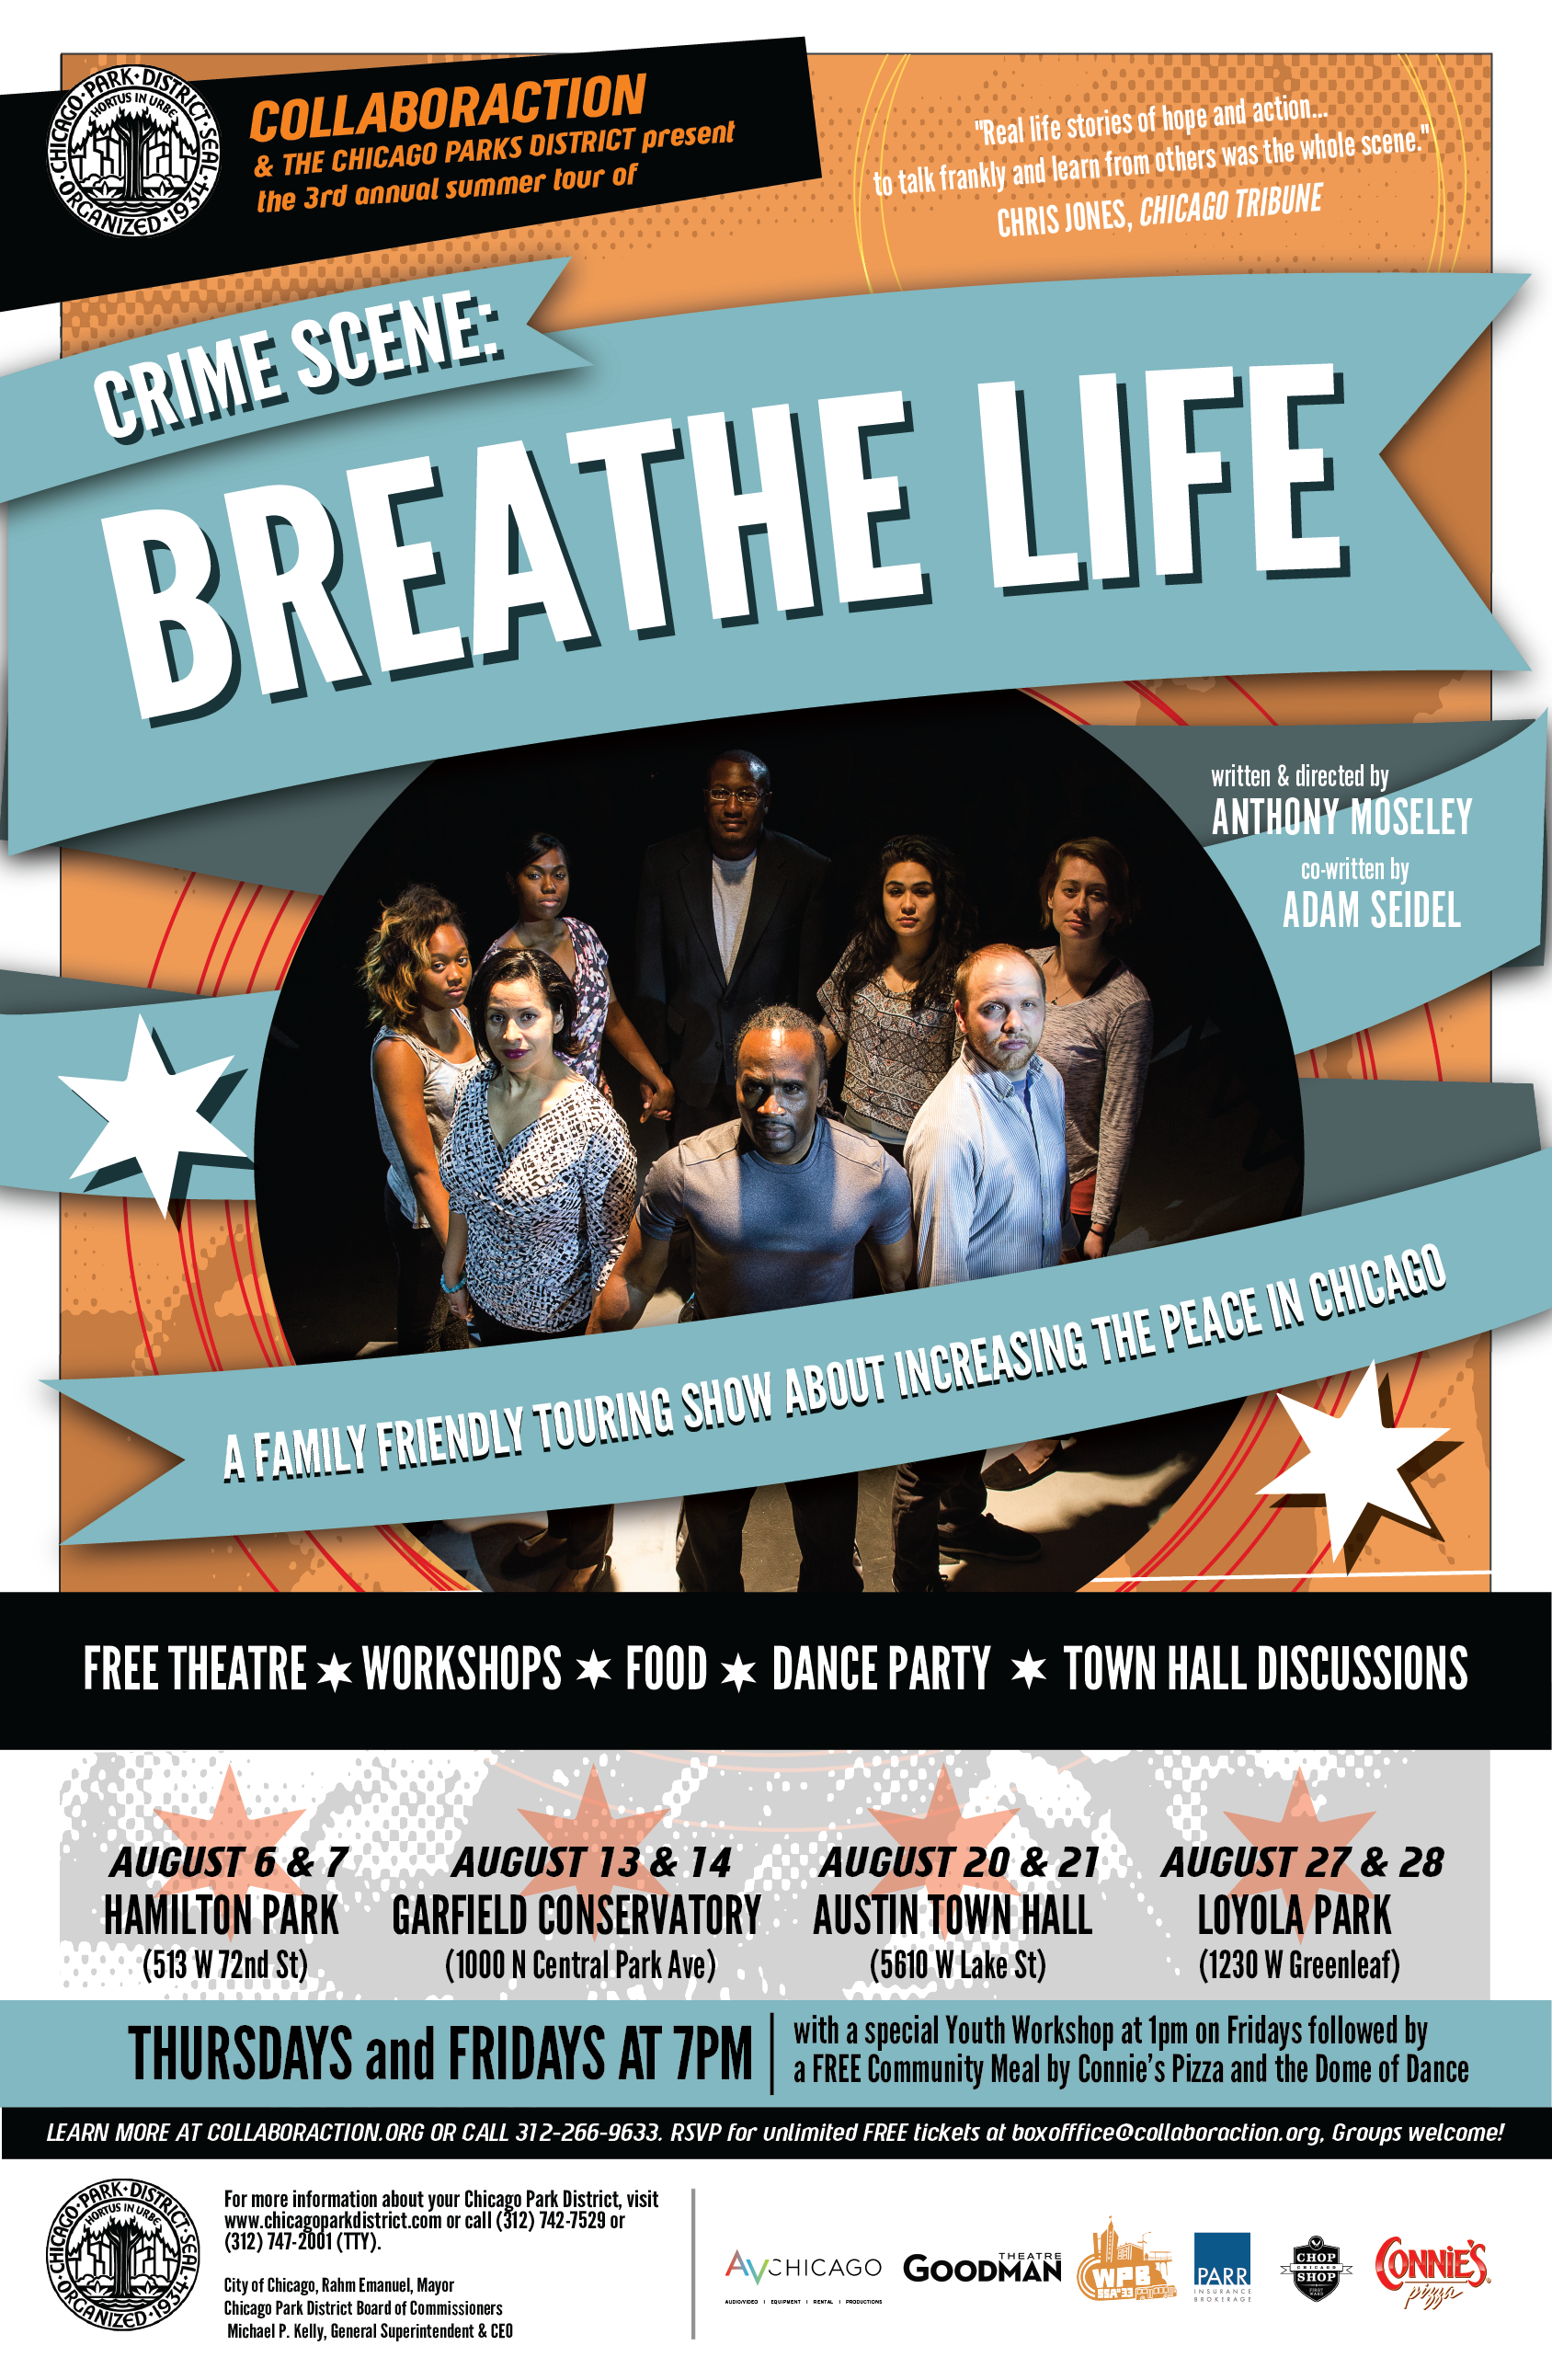 Crime Scene: Breathe Life 2015